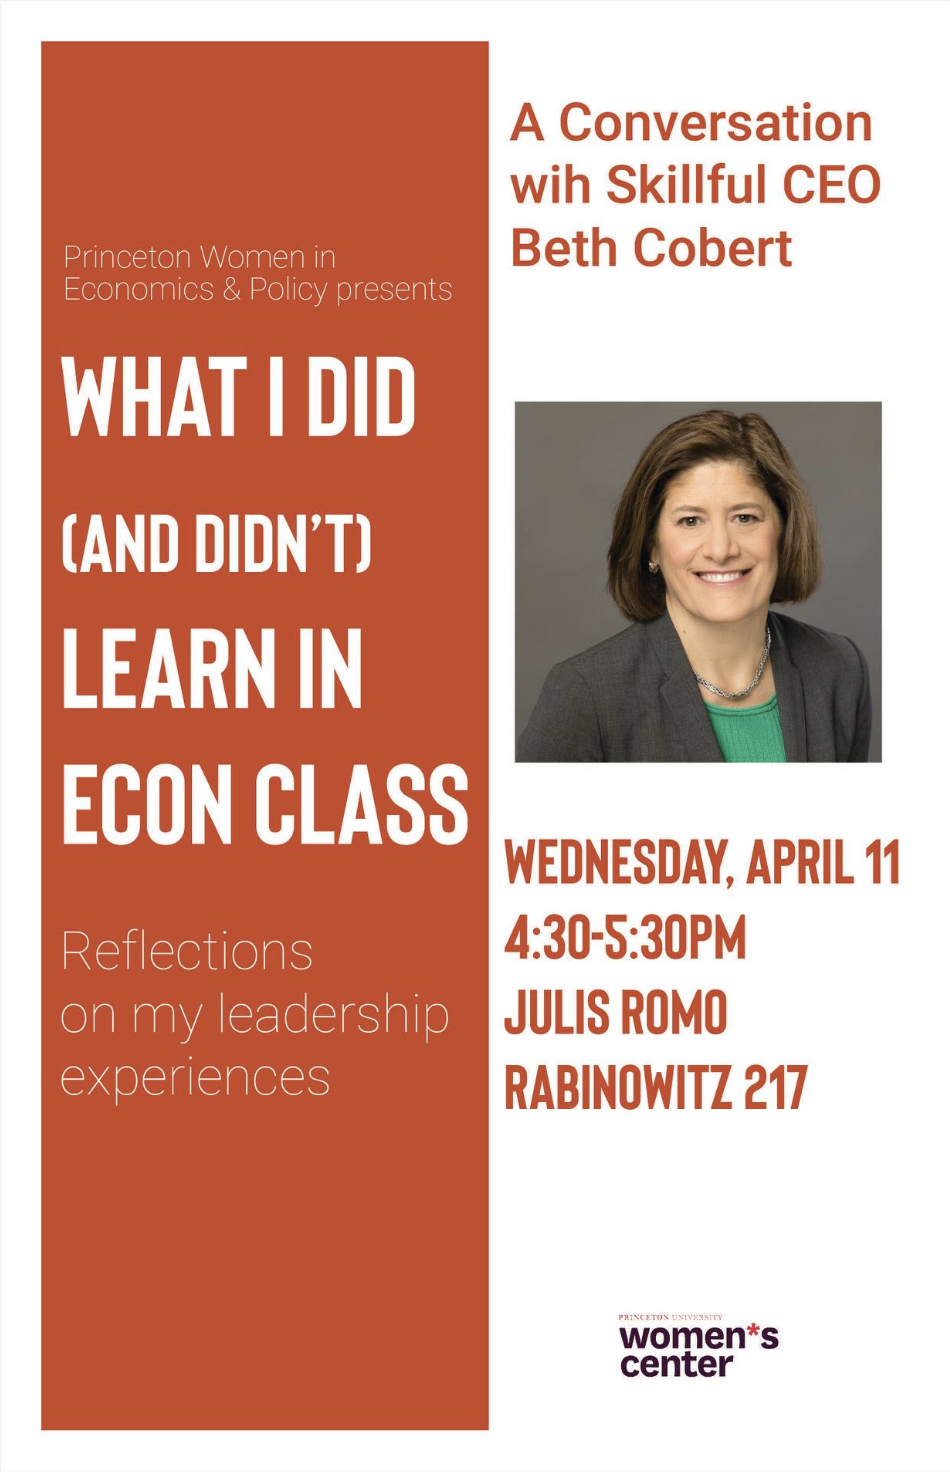 """What I Did (and Didn't) Learn in Econ Class - Princeton Women in Economics & Policy is excited to invite you to our next talk on April 11th, """"What I did (and didn't) learn in Econ class: Reflections on my leadership experiences"""" with Skillful CEO Beth Cobert! The discussion will focus on leadership and lessons she has learned as a senior executive in business, government, and the non-profit sector in addition to other insights she has gained throughout her extensive career."""